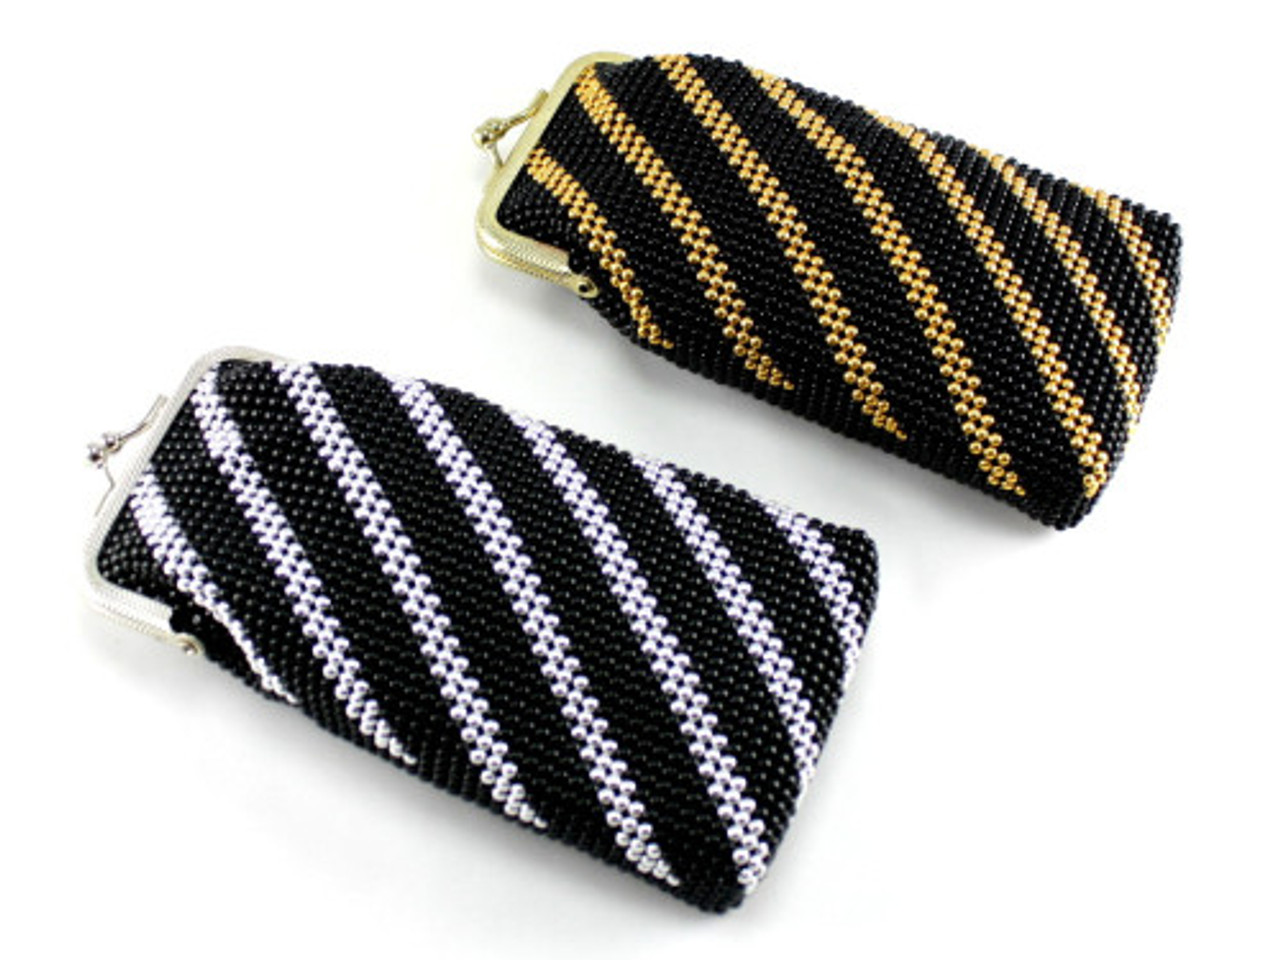 Black Stripe Cigarette Pack Holder